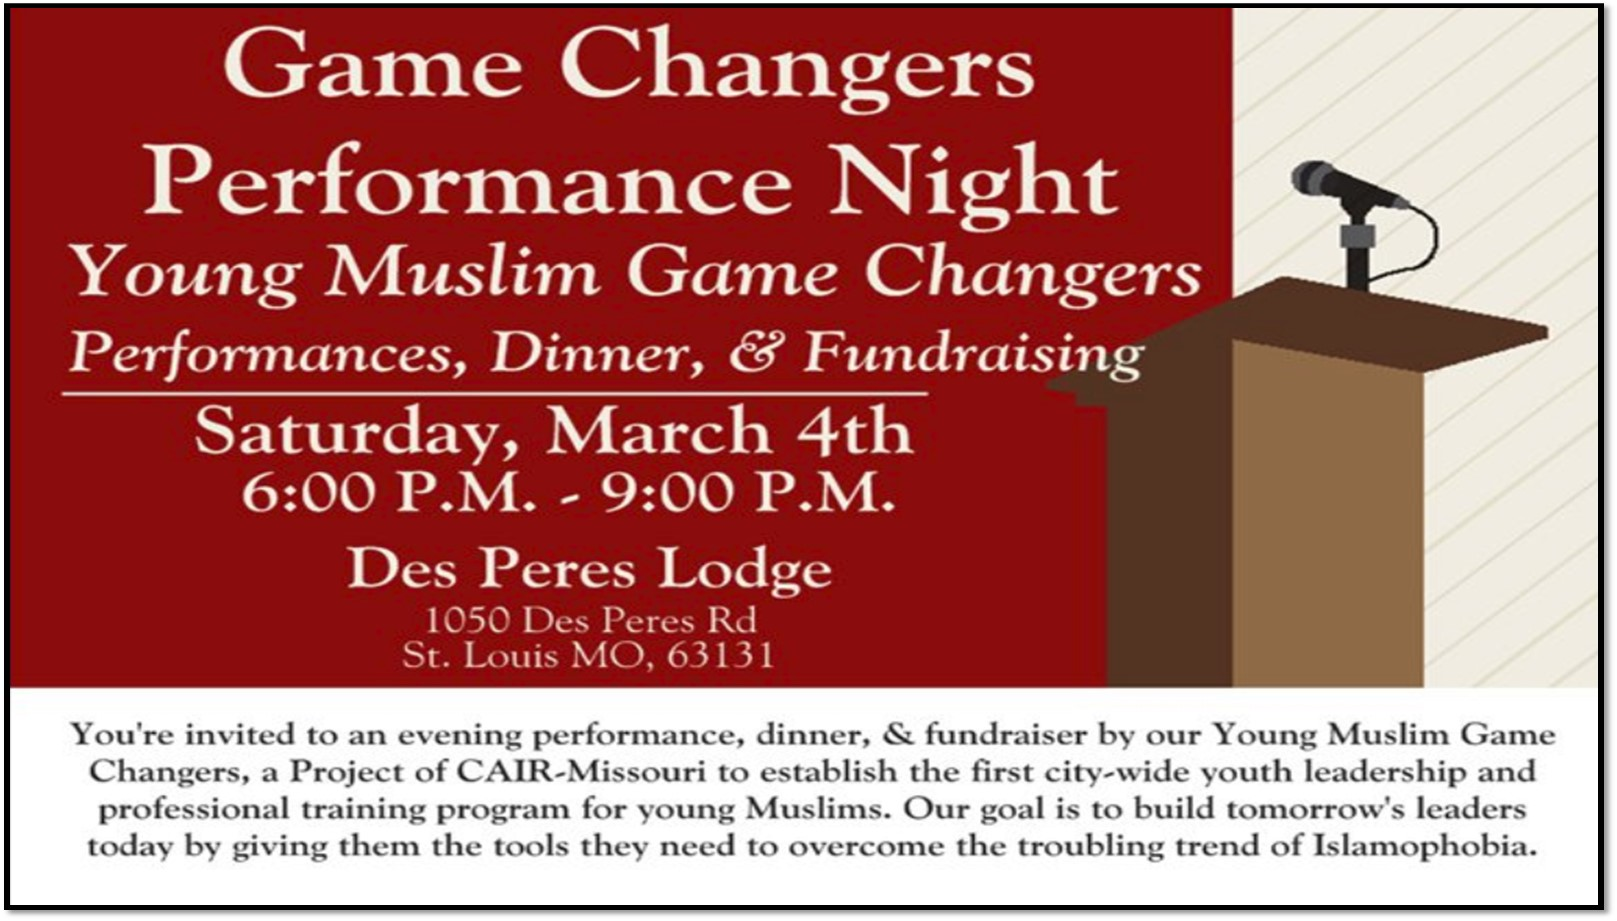 Game Changers Night Photo